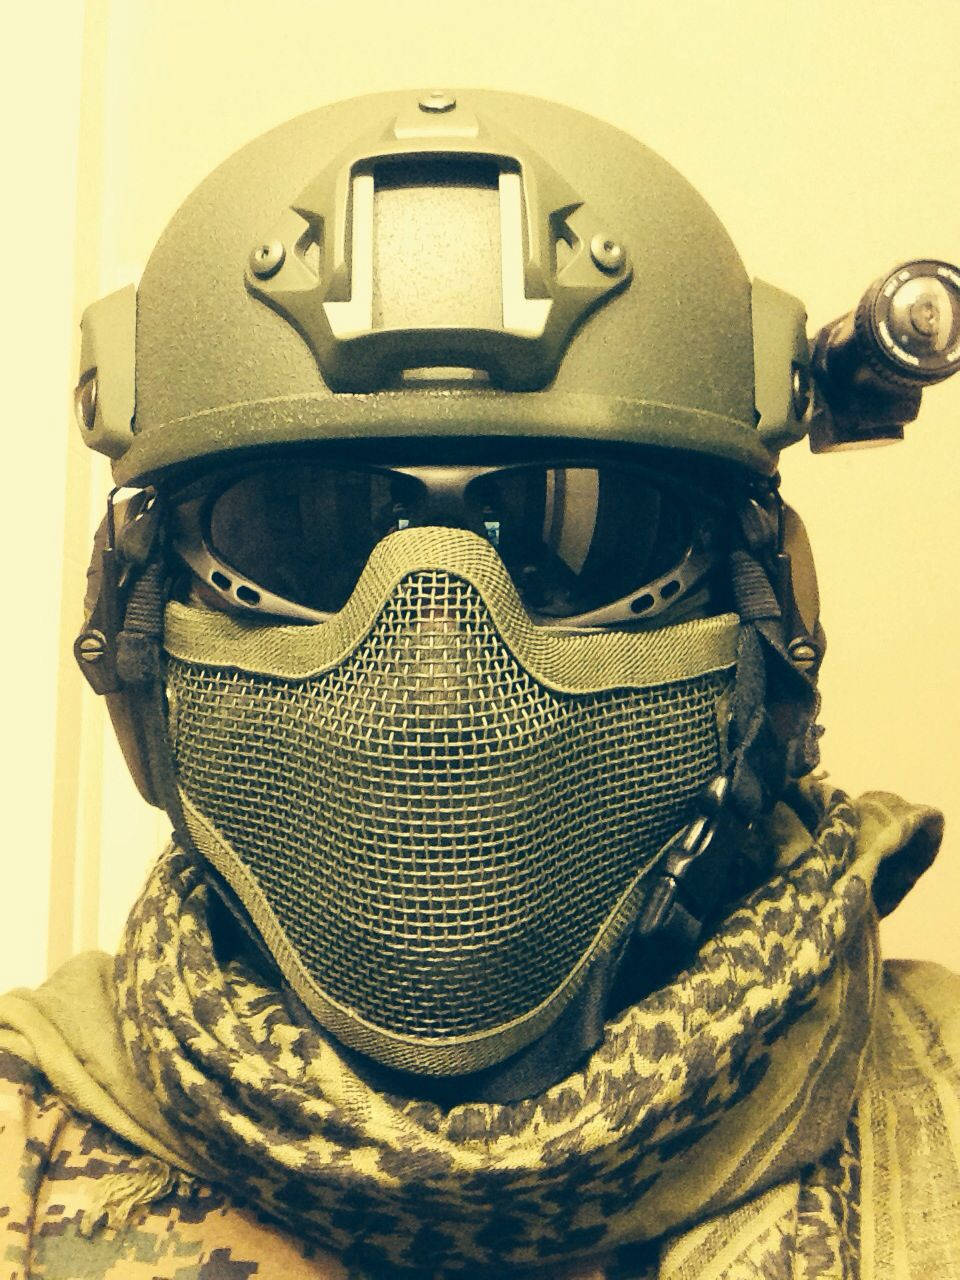 Airsoft helmet, tactical goggles, mesh mask, and ghost gopro ...